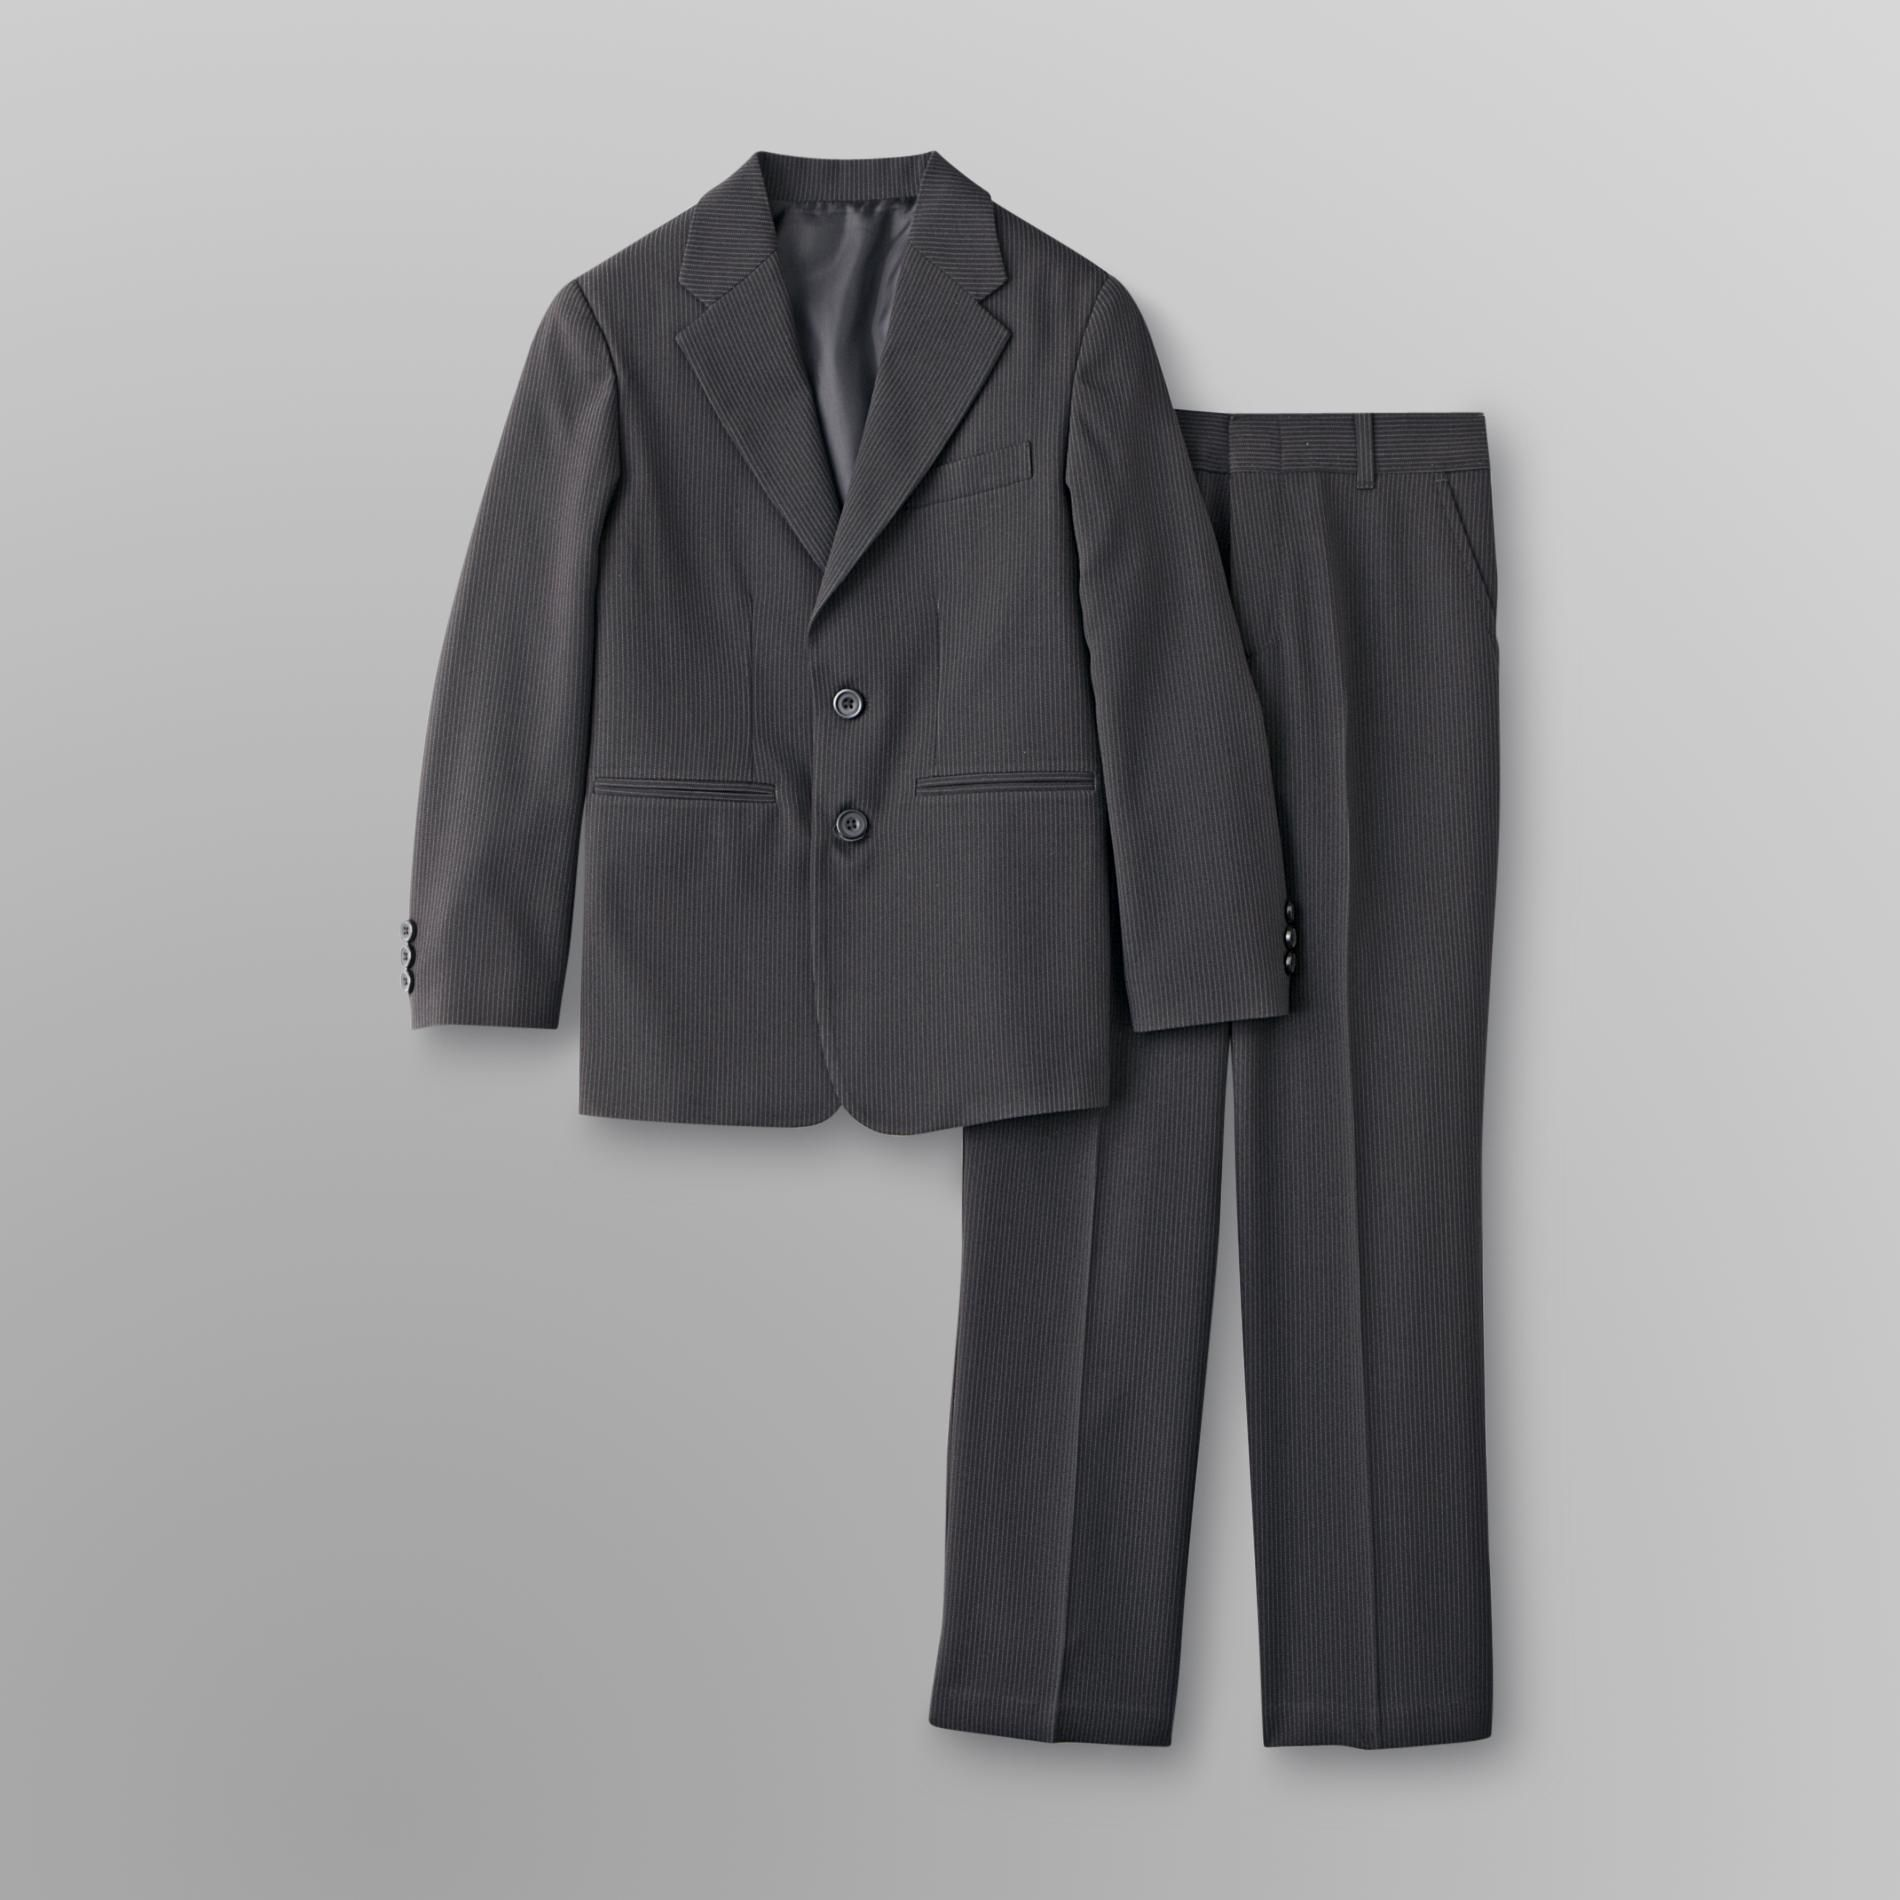 Holiday Editions Boy's Pinstripe Pant Suit